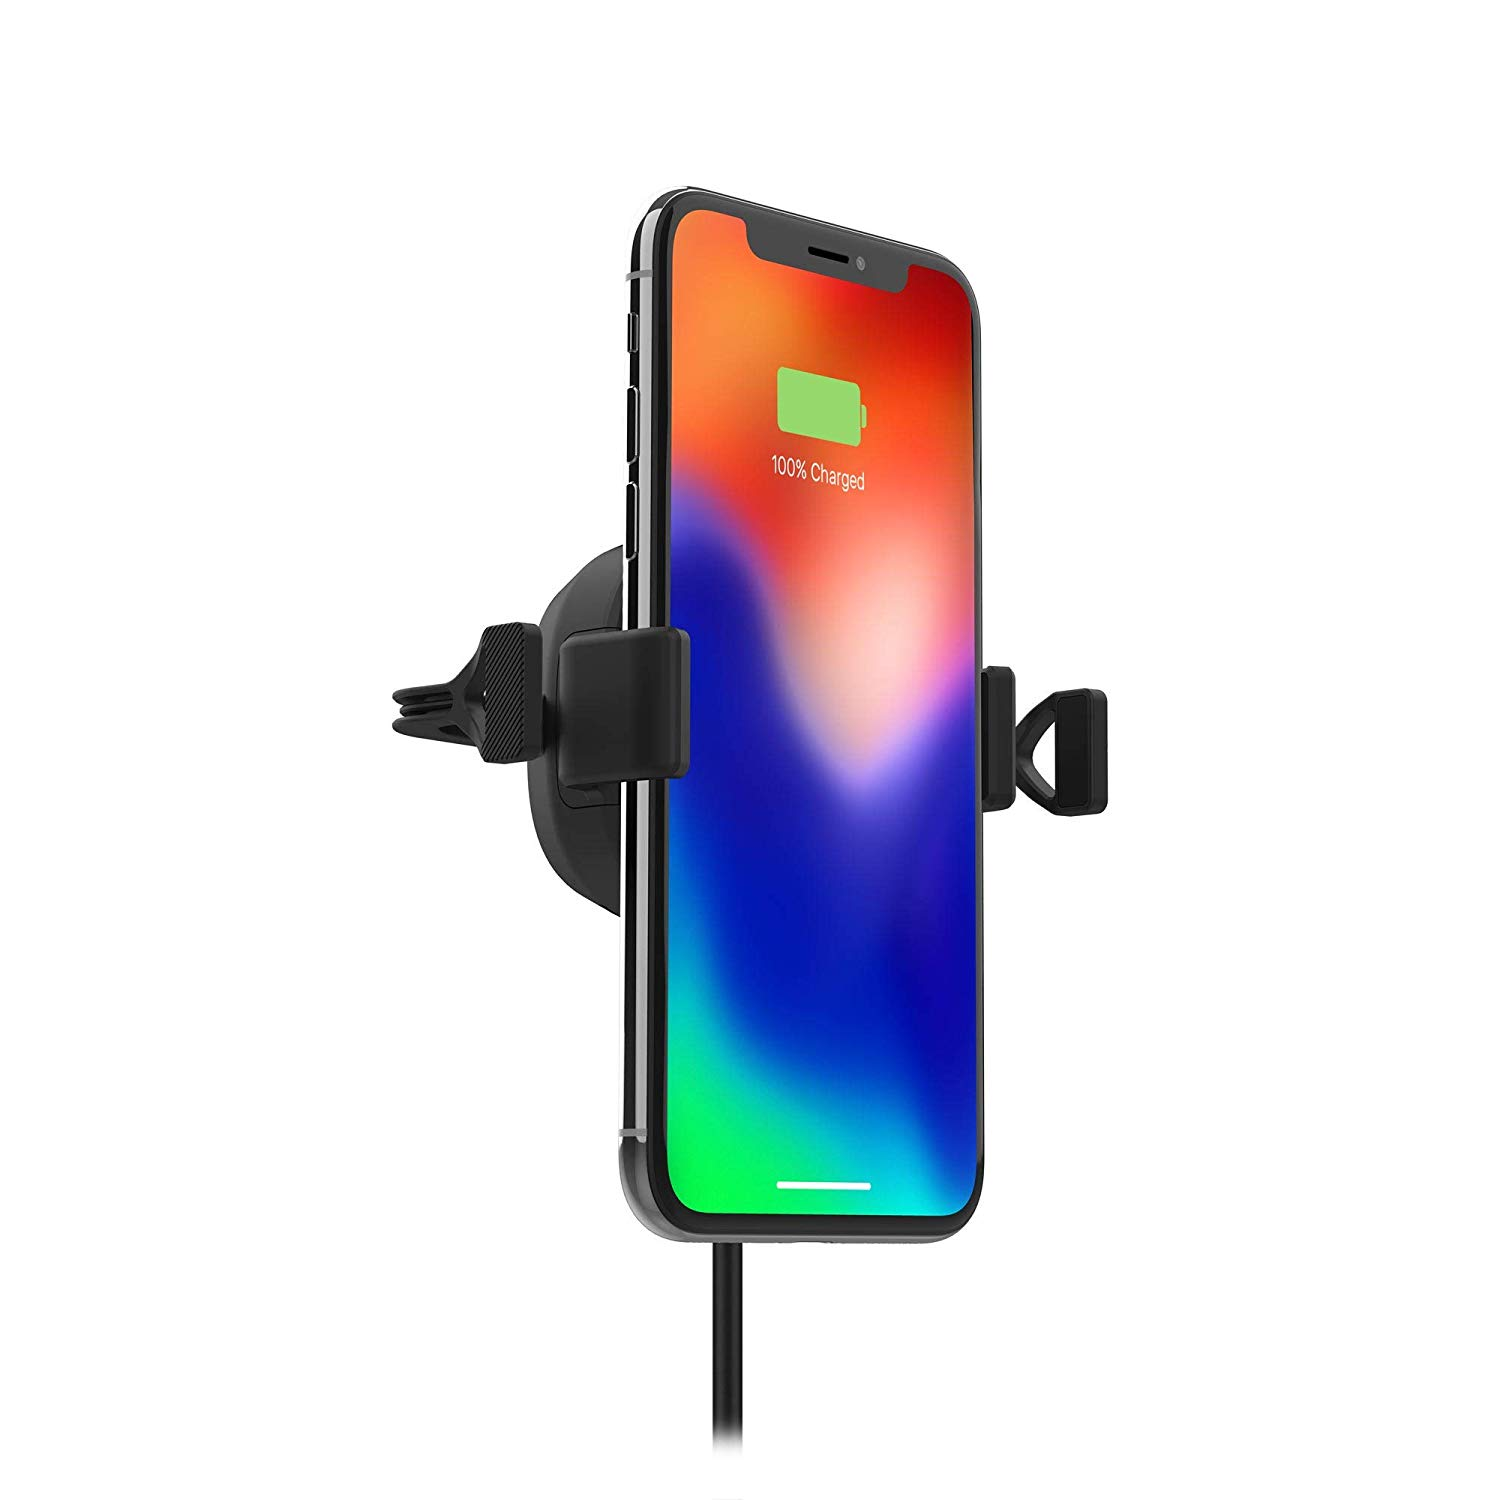 Mophie Wireless Charge Stream Vent Mount - 10W of power to Qi-enabled